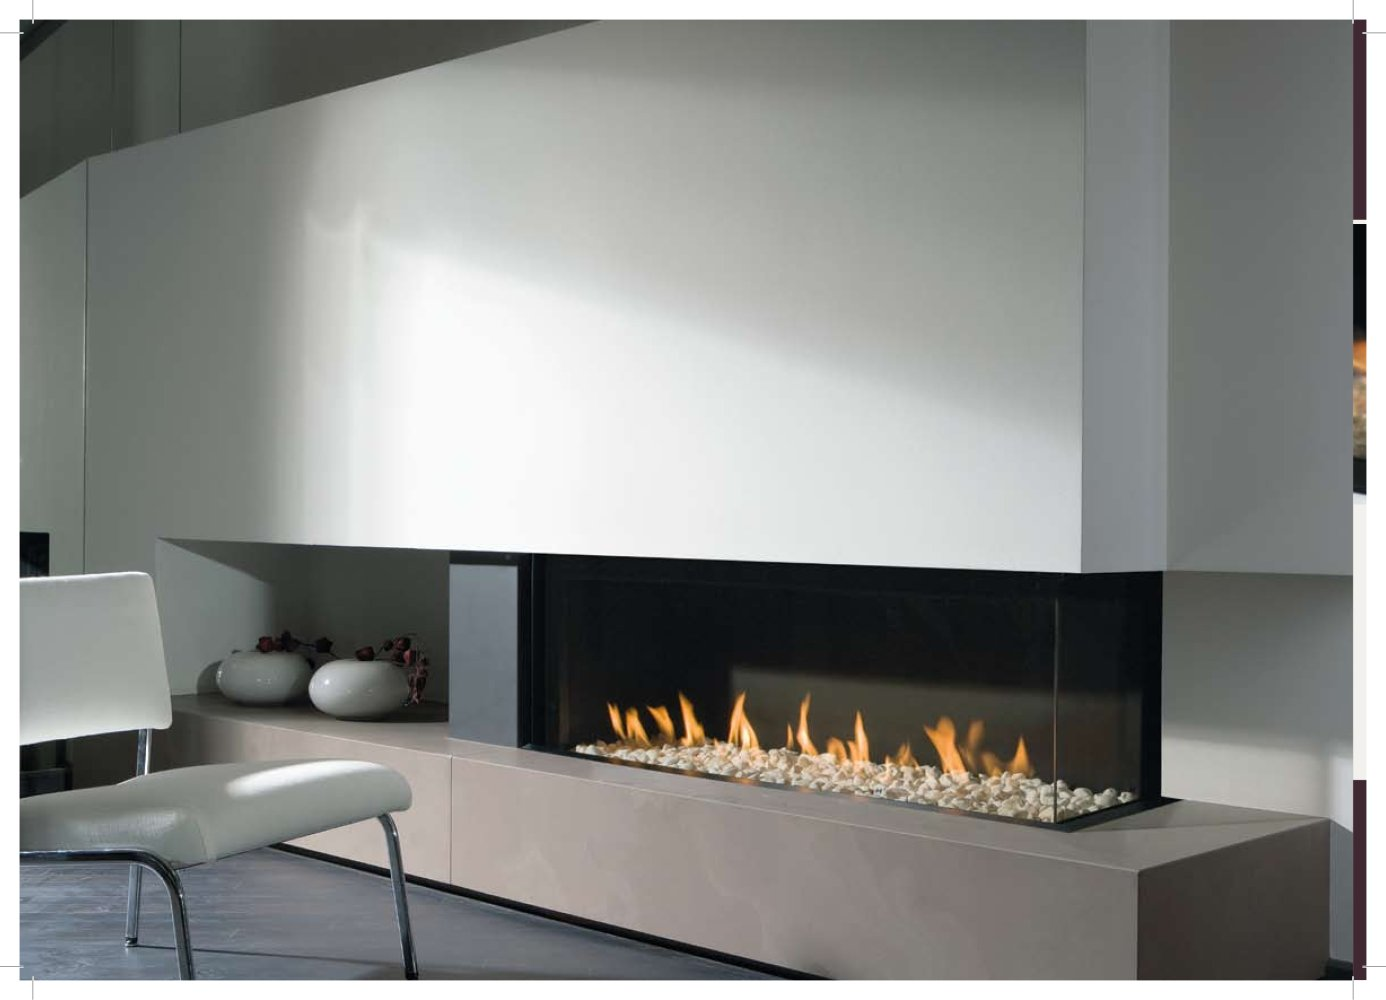 2009-wood-gas-fireplaces-m-design-version-jpg-page-n-46